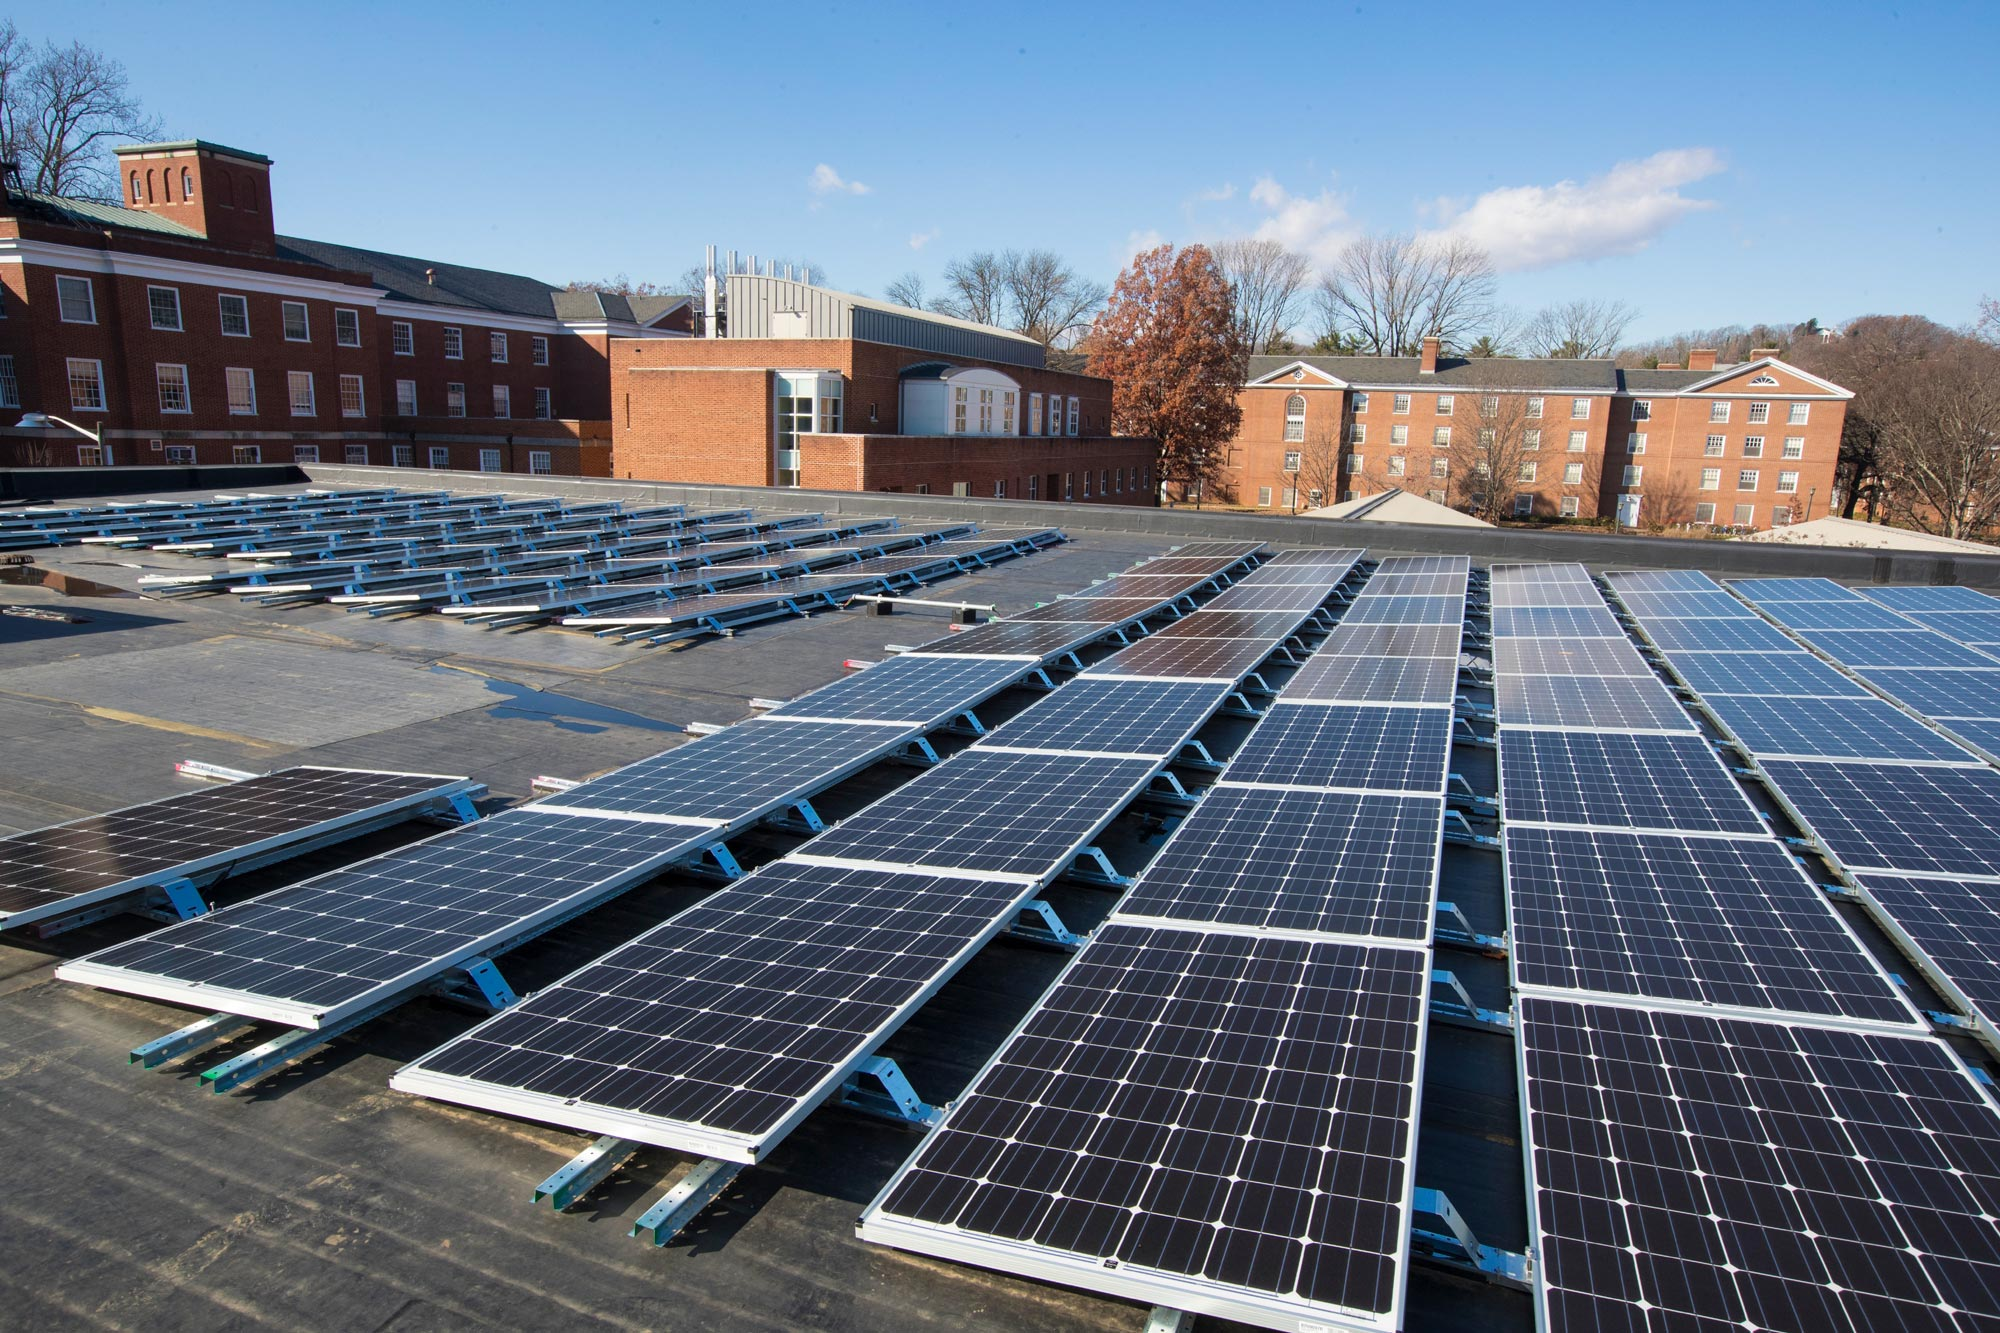 The University of Virginia draws about 20% of its electricity from solar sources.